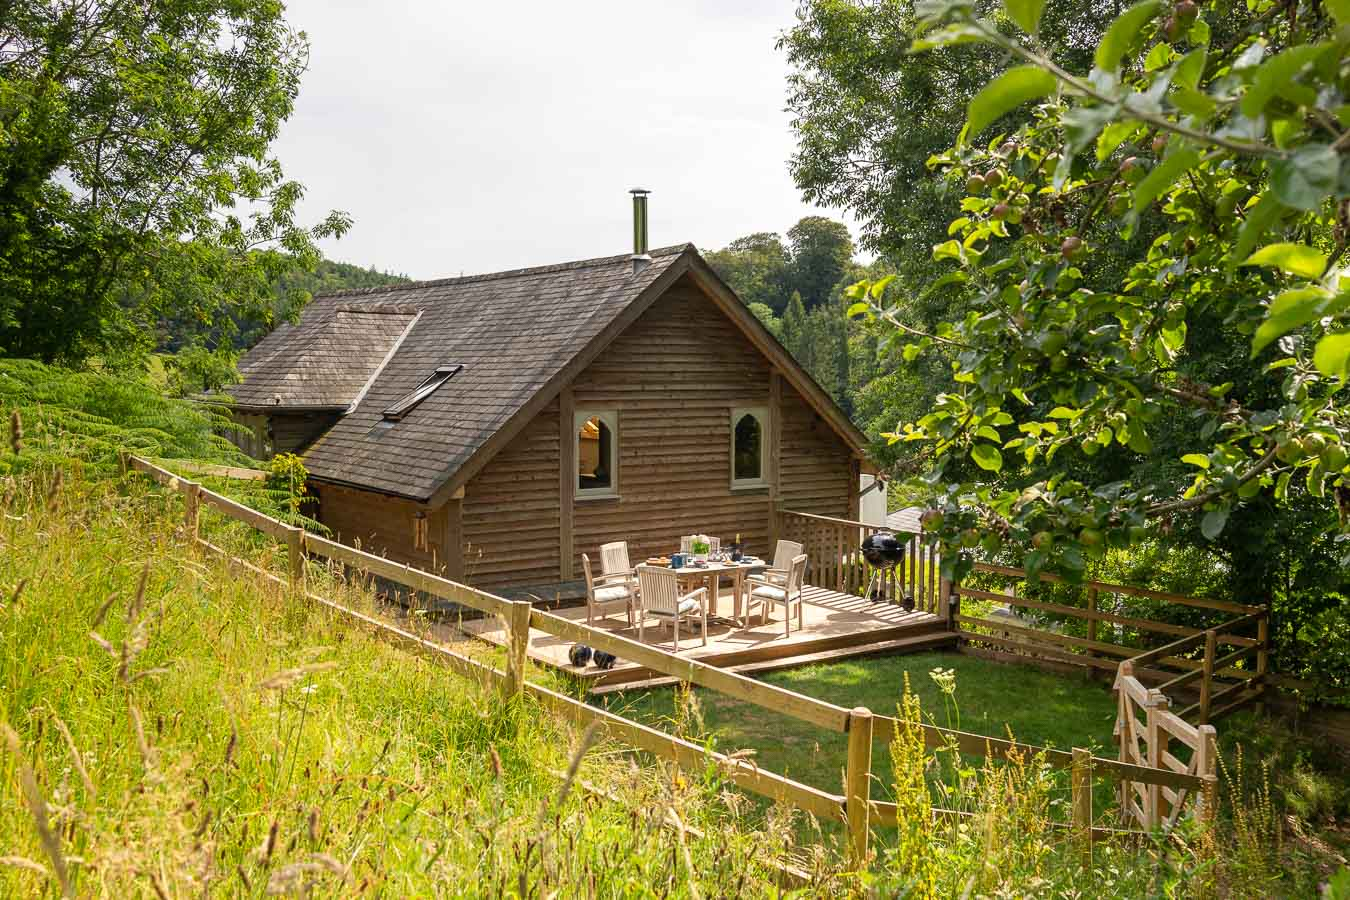 Orchard Lodge gets its name from being nestled on the edge of the 3 acre Orchard. You et exclusive views of the rustling grasses and ancient apple trees at Flear Farm.